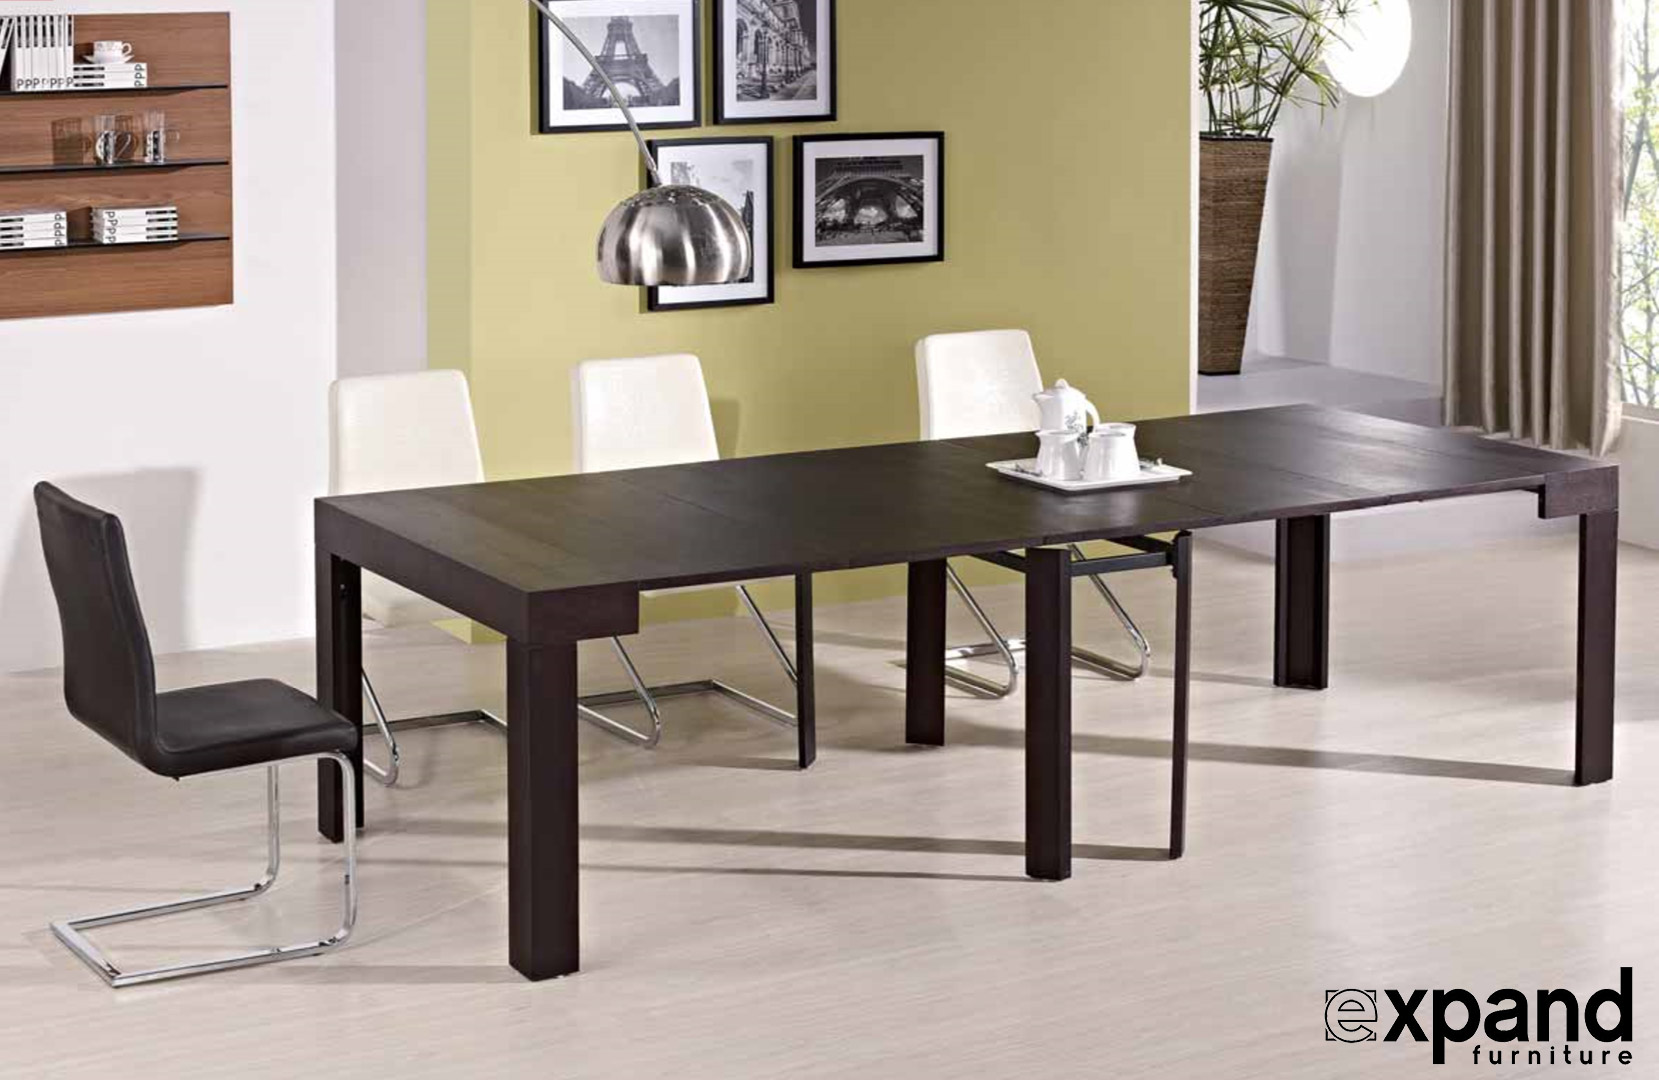 Small Kitchen Table Sets For Tiny titan transforming kitchen table expand furniture prev workwithnaturefo